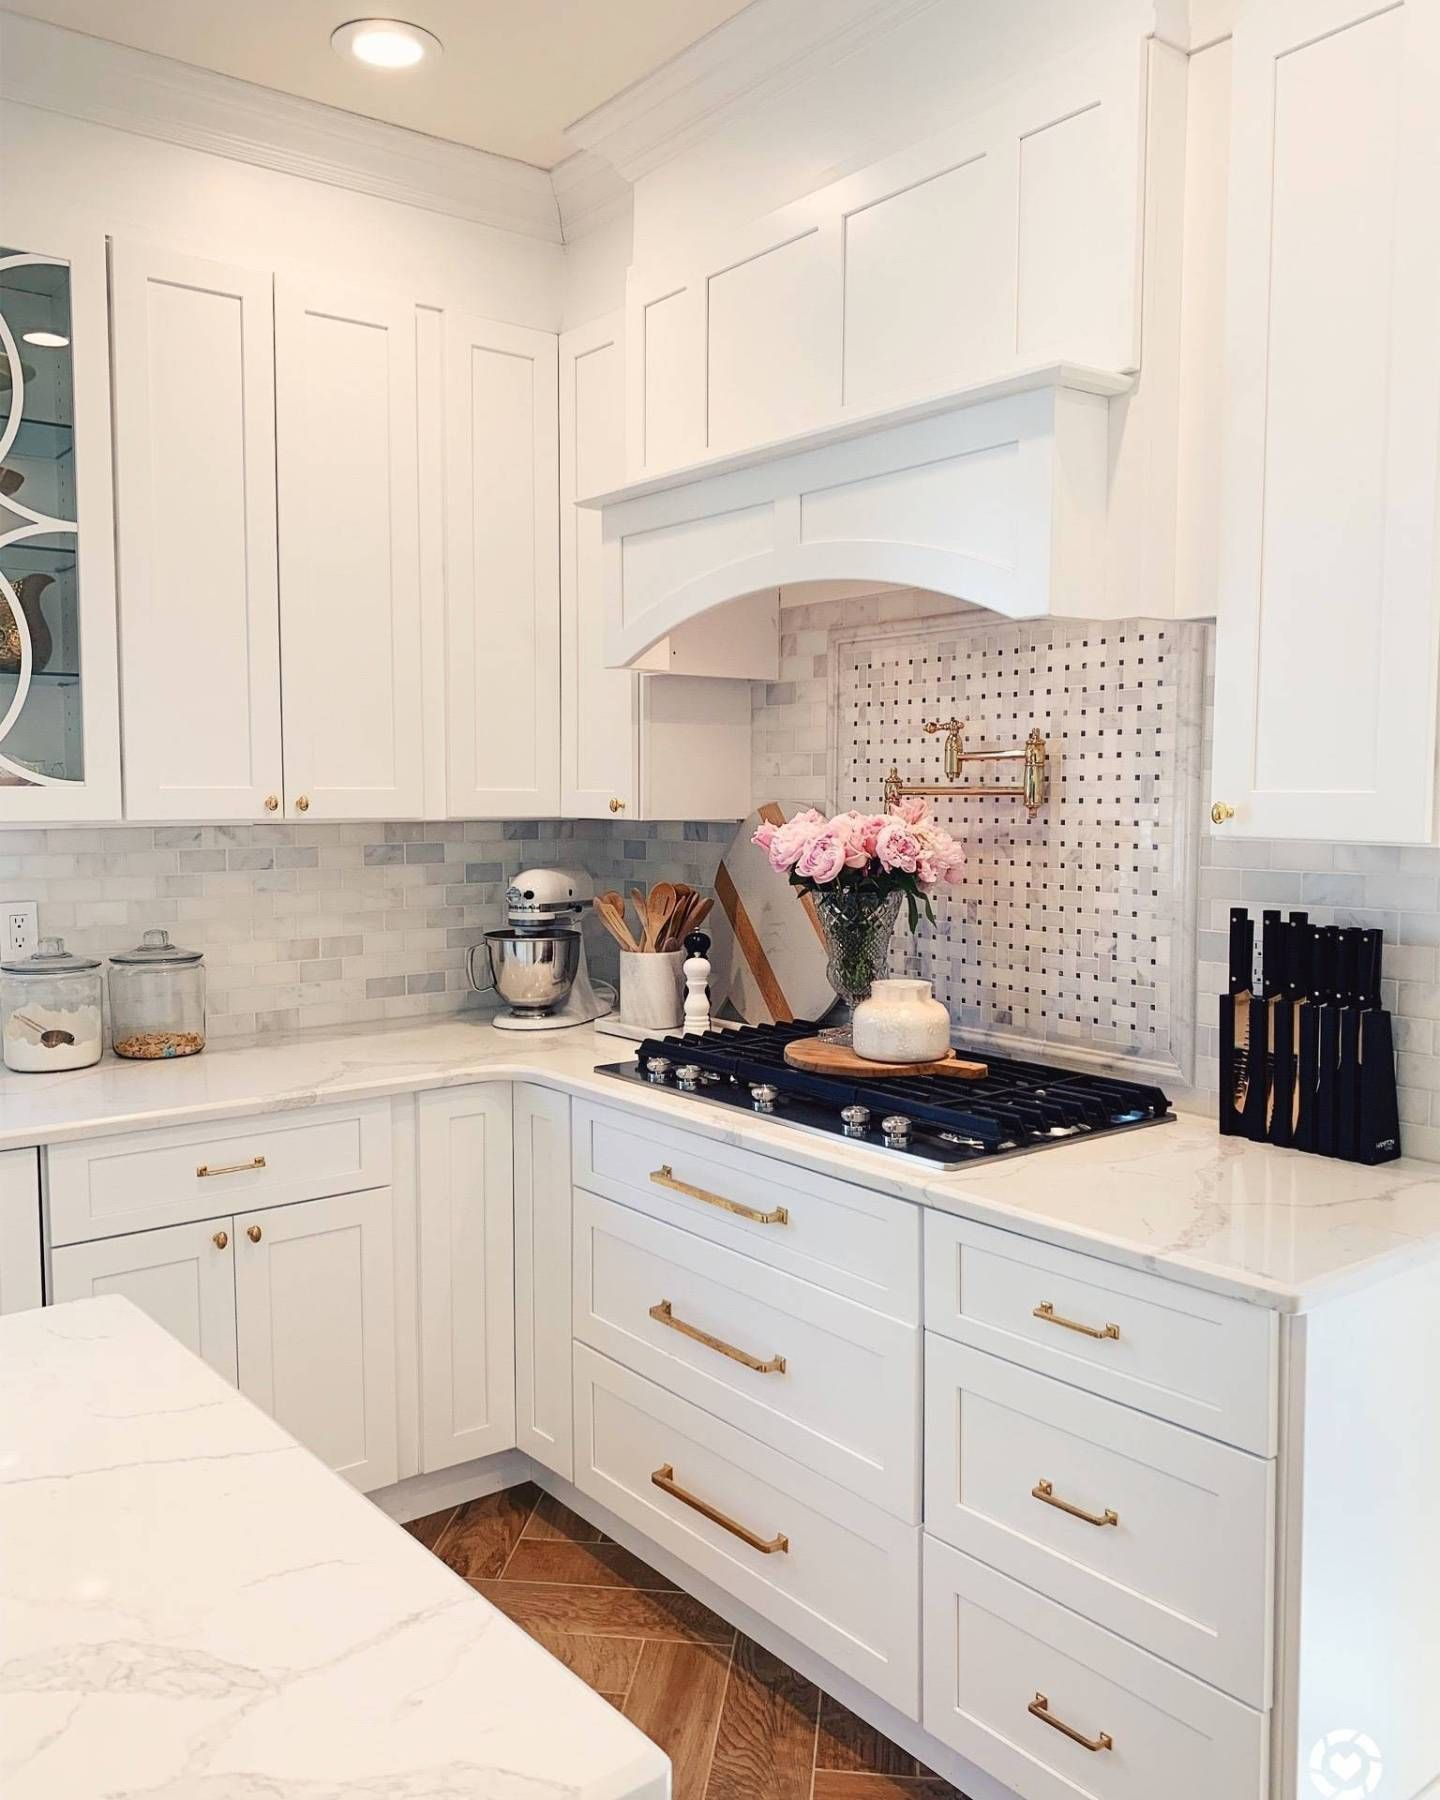 Pin on White and cooler kitchen